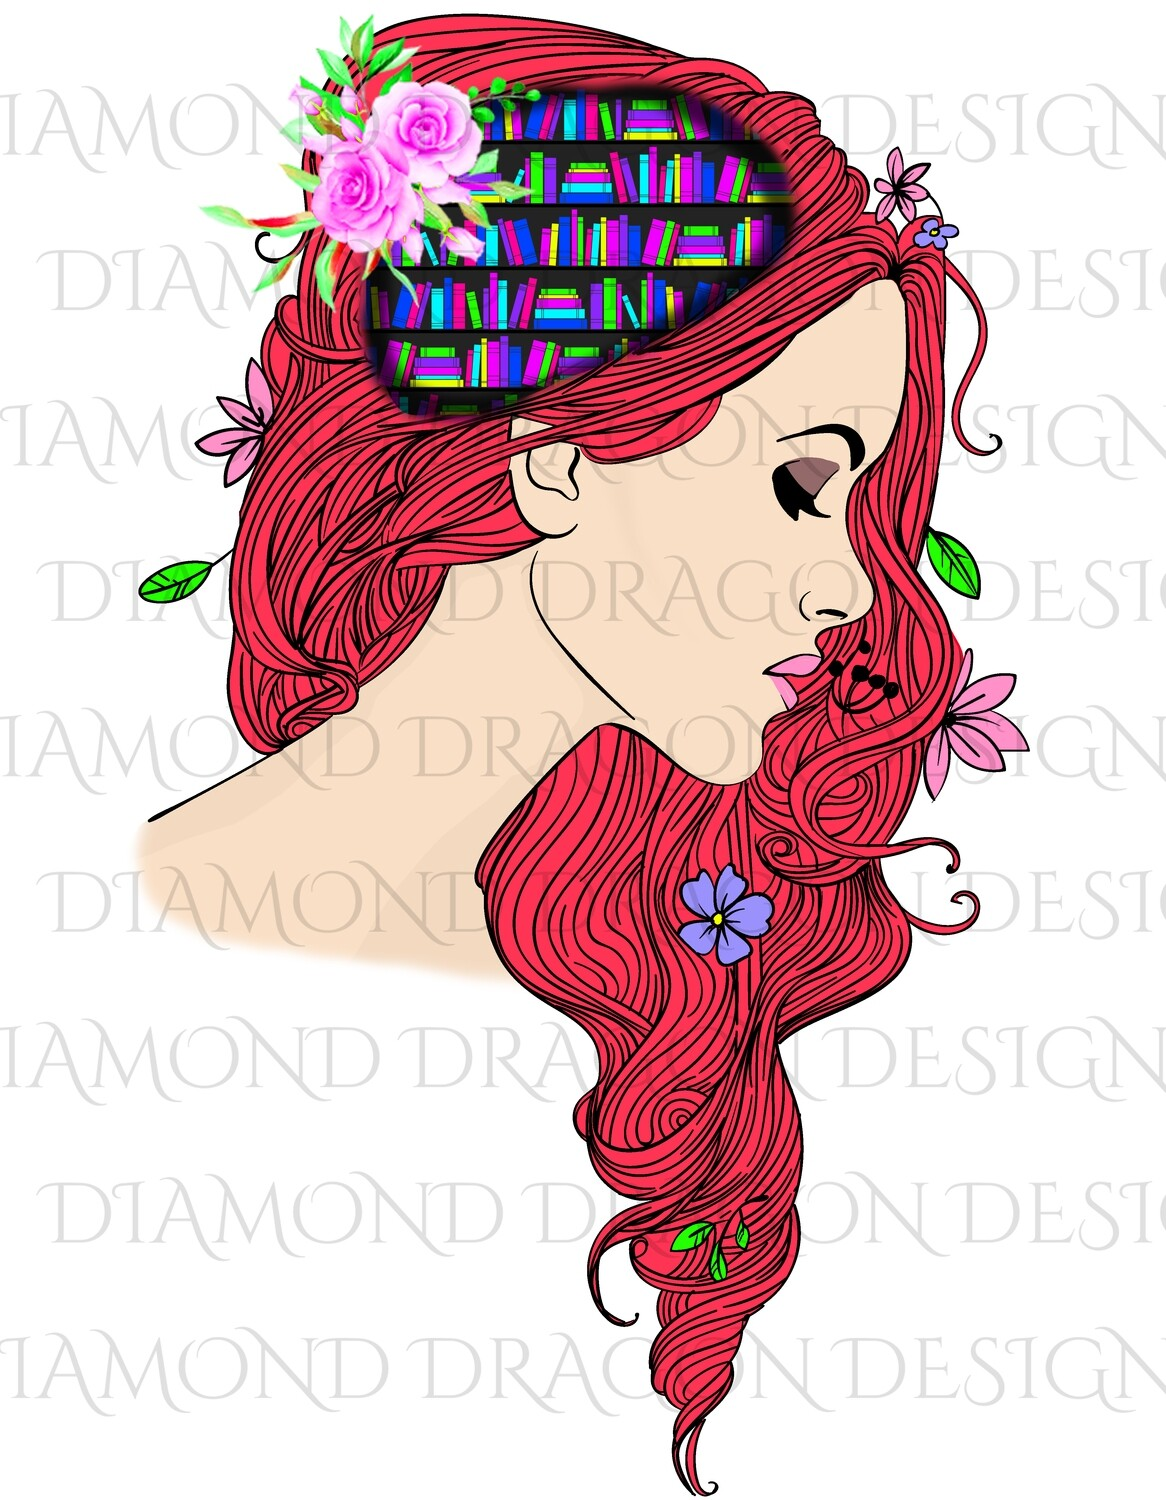 Books - Whimsical, Red Head, Lady Library, Book Lover, Book Girl, Digital Image